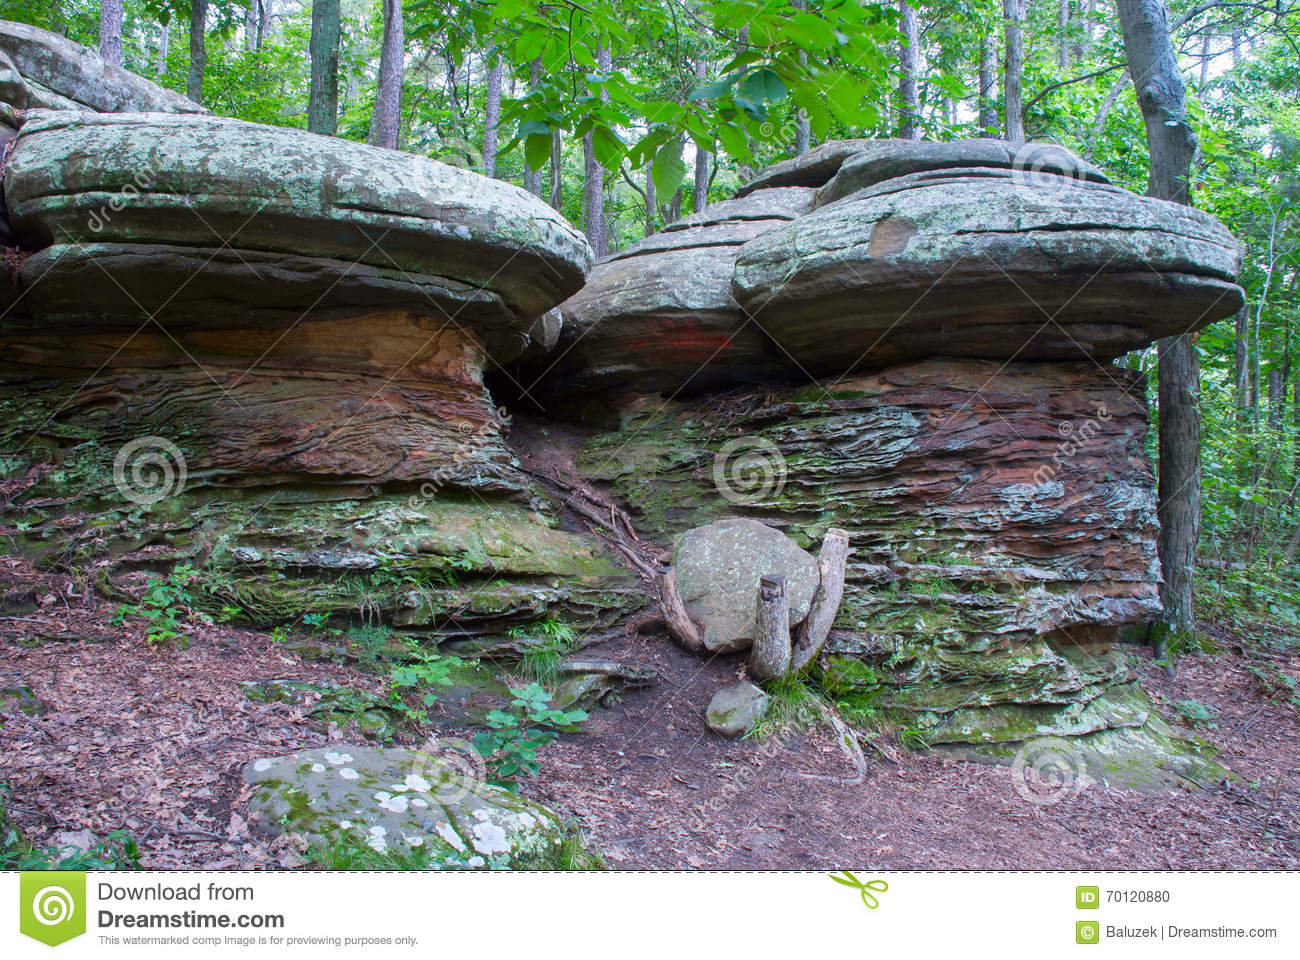 Garden Of The Gods Wilderness In Shawnee National Forest, Illinois, USA